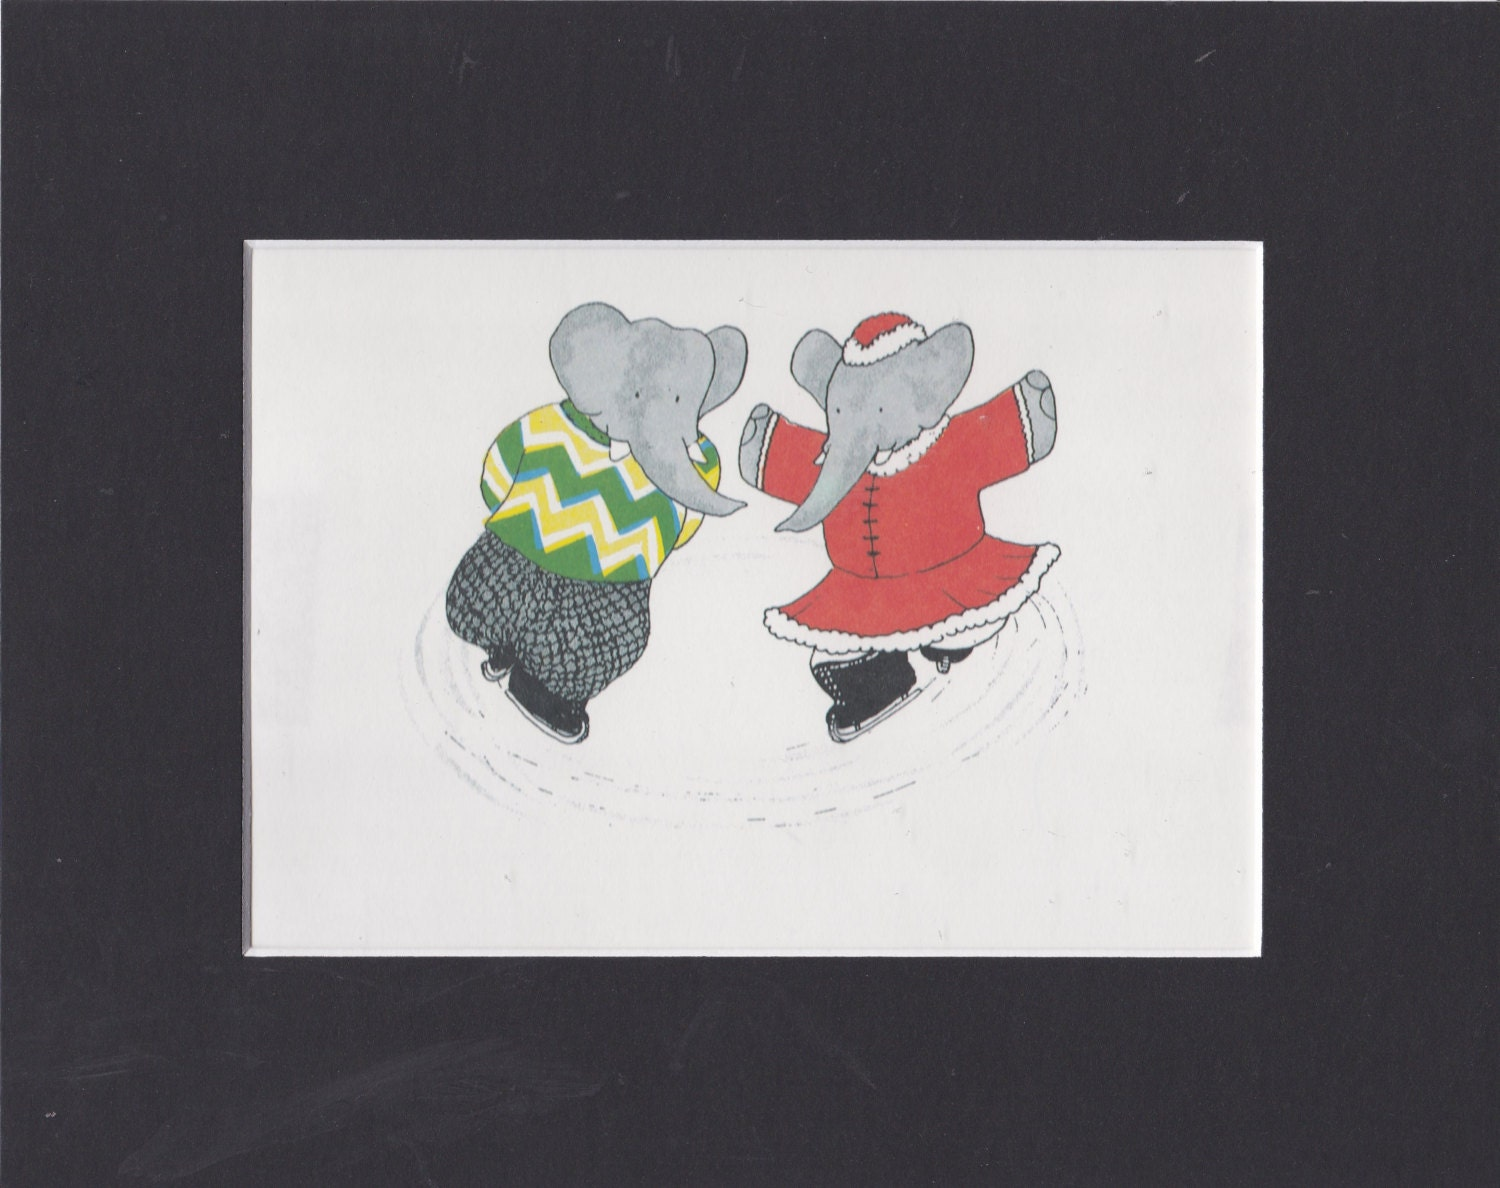 Babar the Elephant. Babar Celeste Skating. Vintage Authentic Print. Matted and Ready to Frame. Perfect for Nursery Decor. Jean de Brunhoff